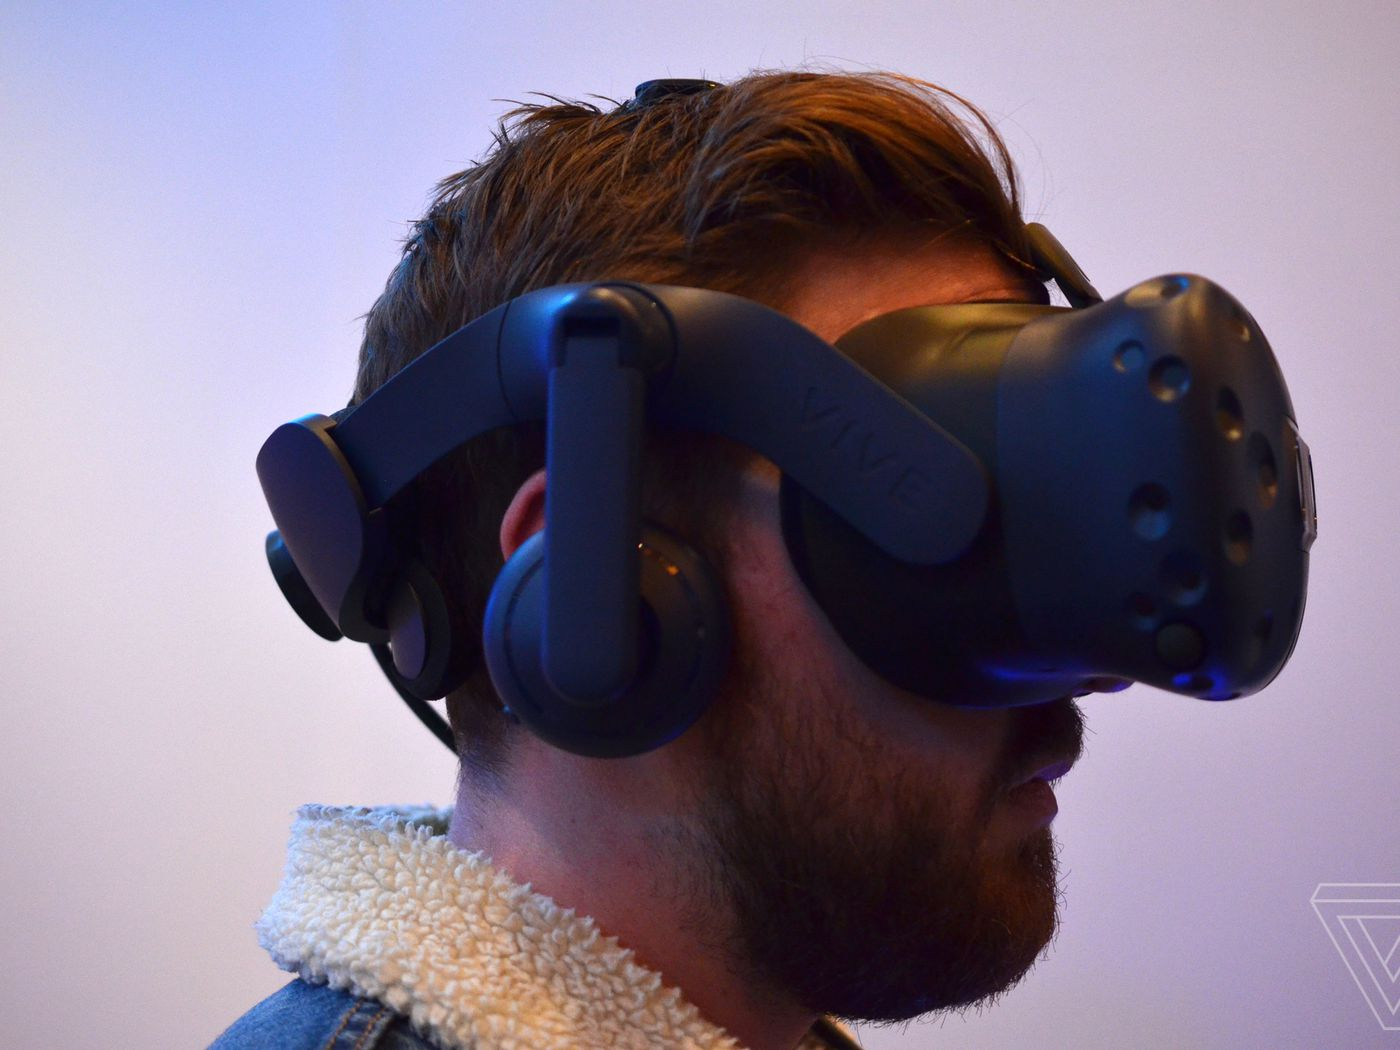 caa4e77199 A closer look at HTC s new higher-resolution Vive Pro - The Verge